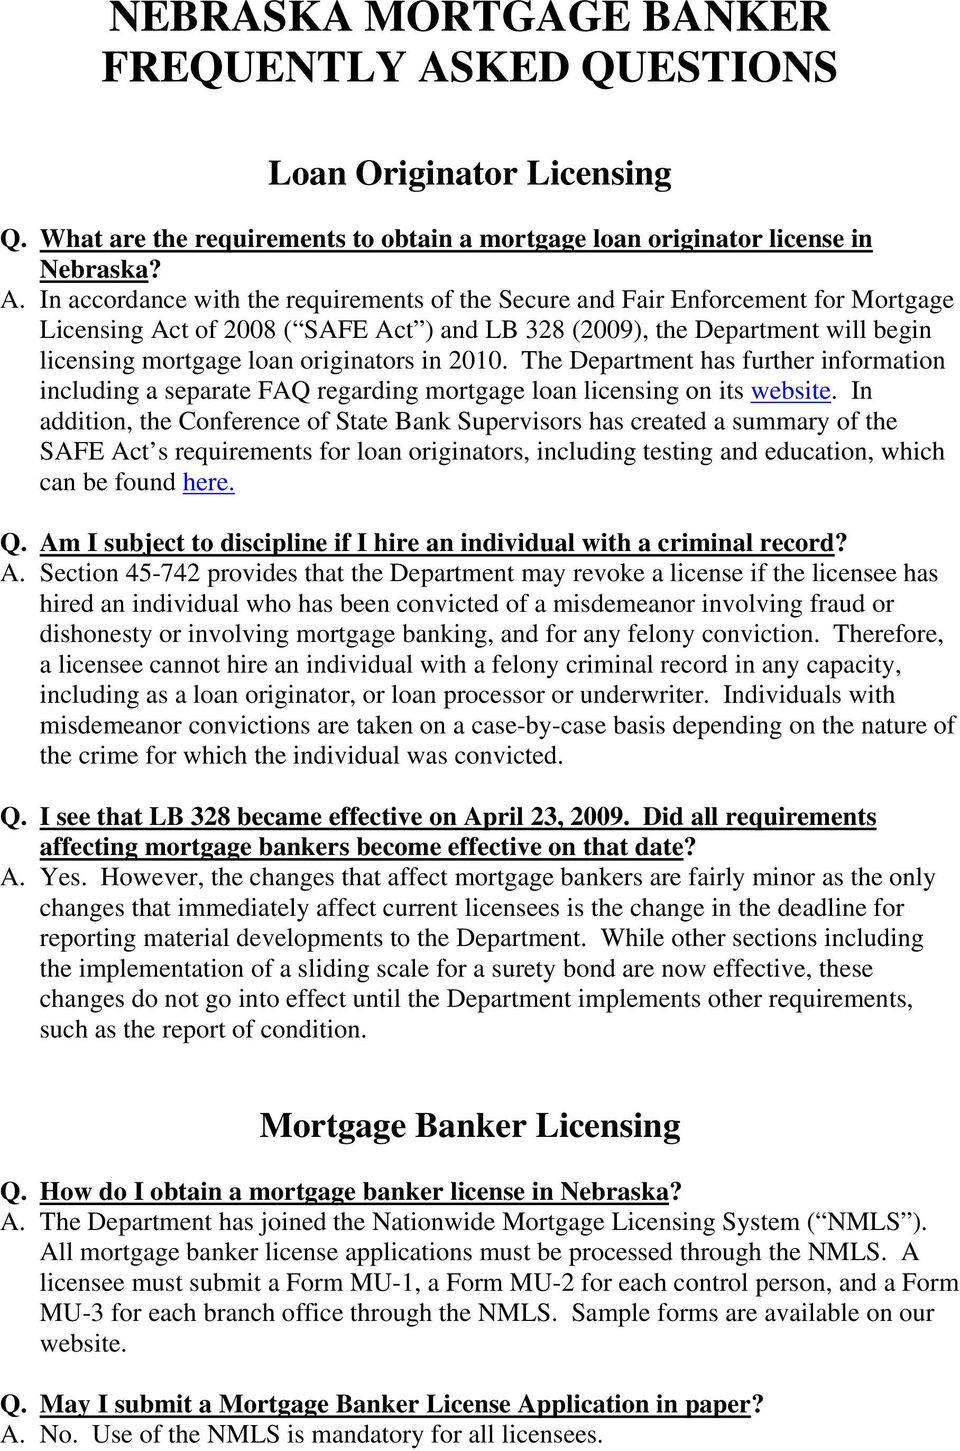 In accordance with the requirements of the Secure and Fair Enforcement for Mortgage Licensing Act of 2008 ( SAFE Act ) and LB 328 (2009), the Department will begin licensing mortgage loan originators